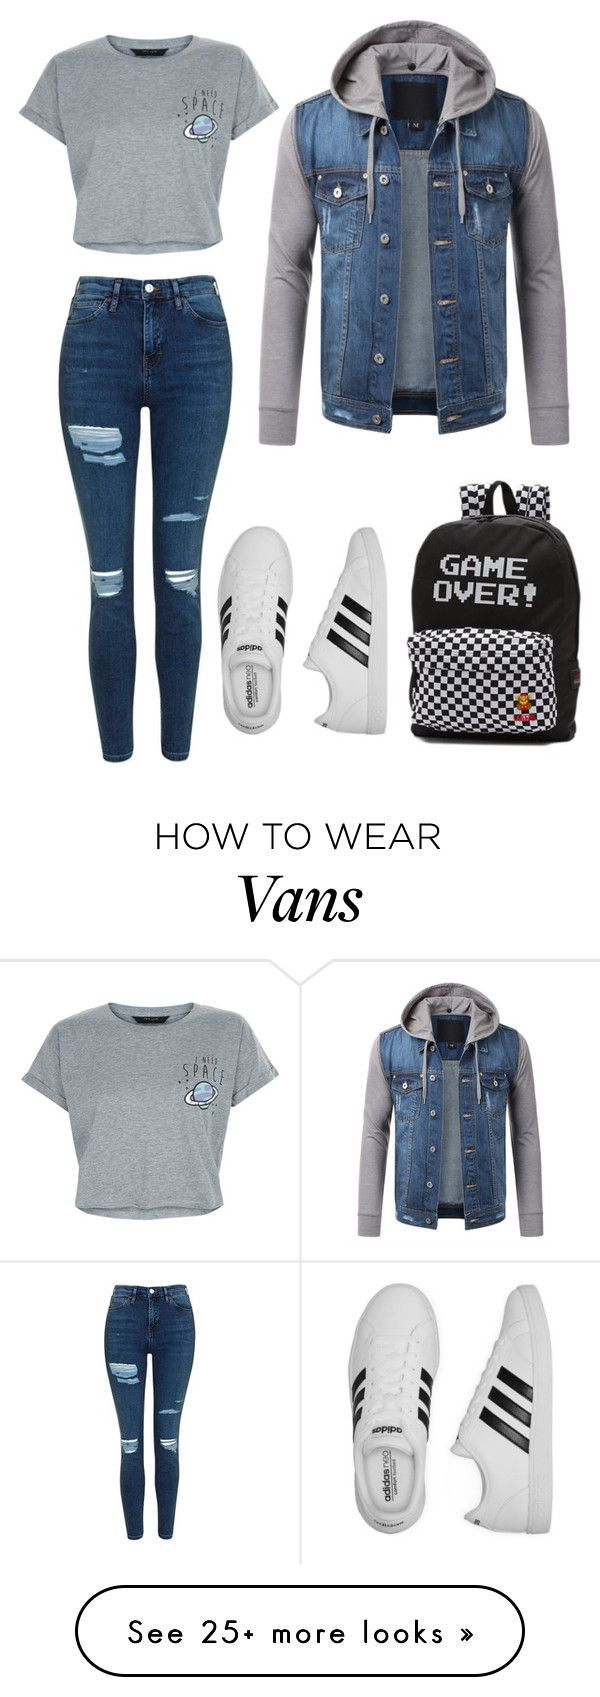 Top 25 ideas about Vans Outfit Girls on Pinterest | Skater outfits Skater girl outfits and ...